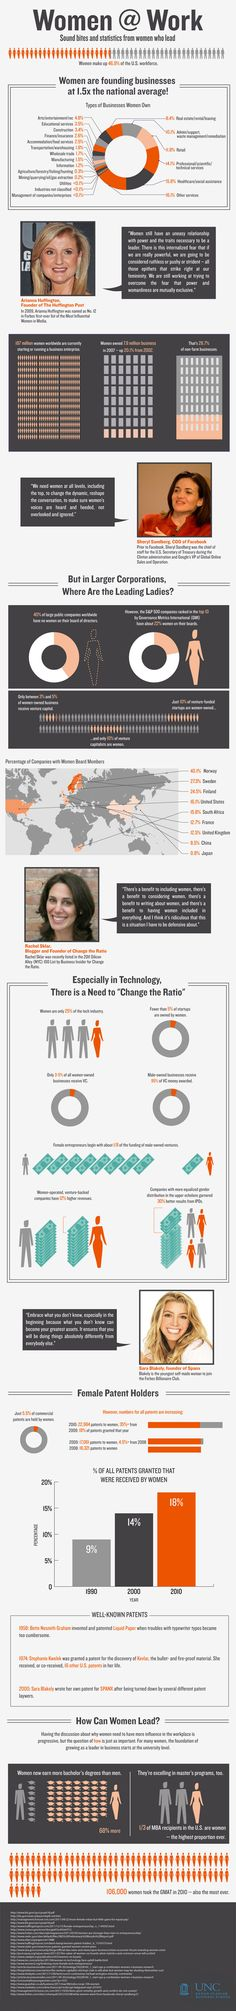 Women At Work: Soundbytes, Statistics Of Women Who Lead (Infographic)